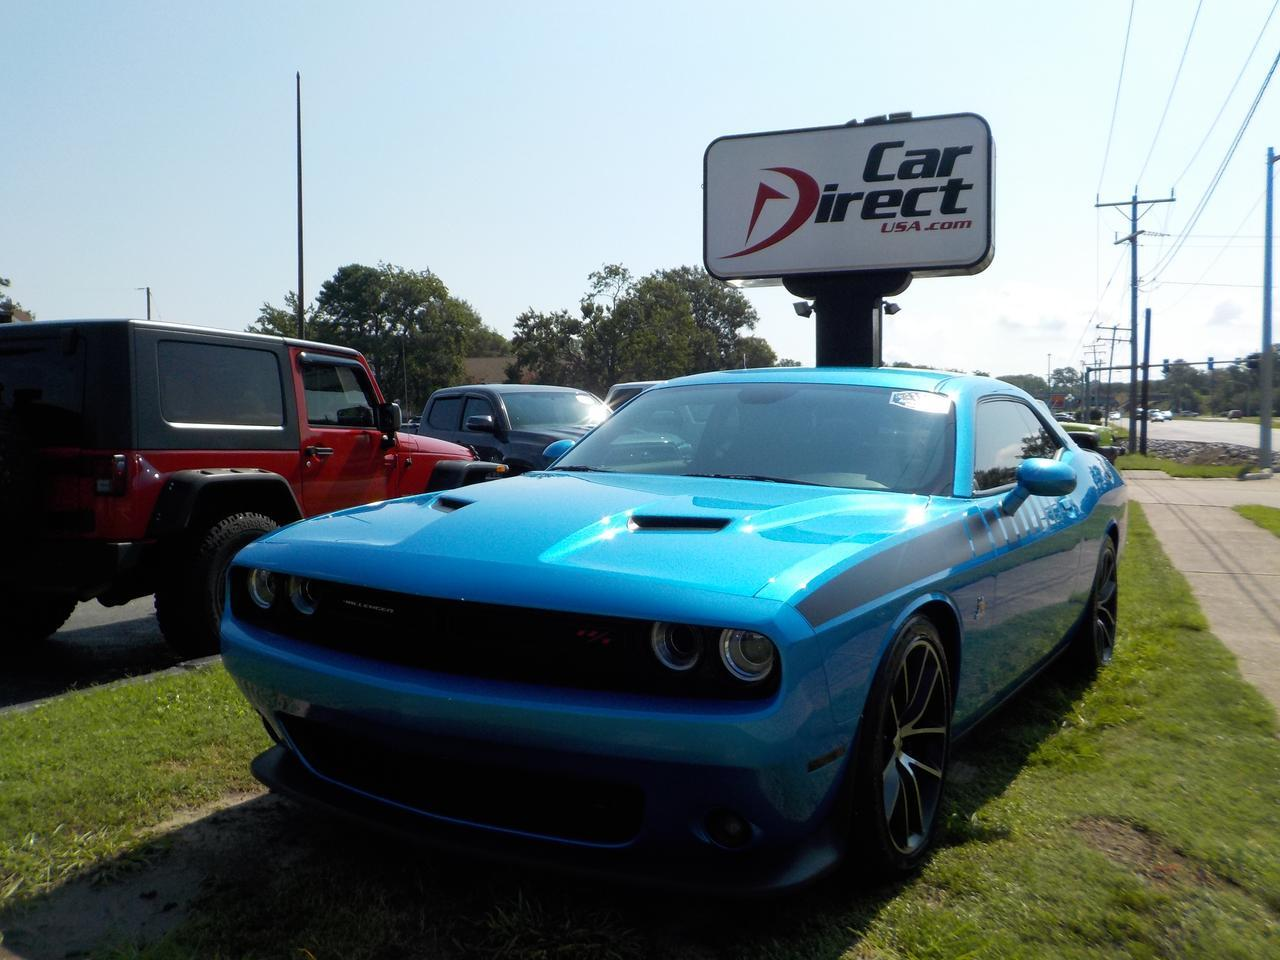 2015 DODGE CHALLENGER R/T SCAT PACK, RWD, BLACK RIMS, ALPINE SOUND SYSTEM, POWER WINDOWS & LOCKS!!